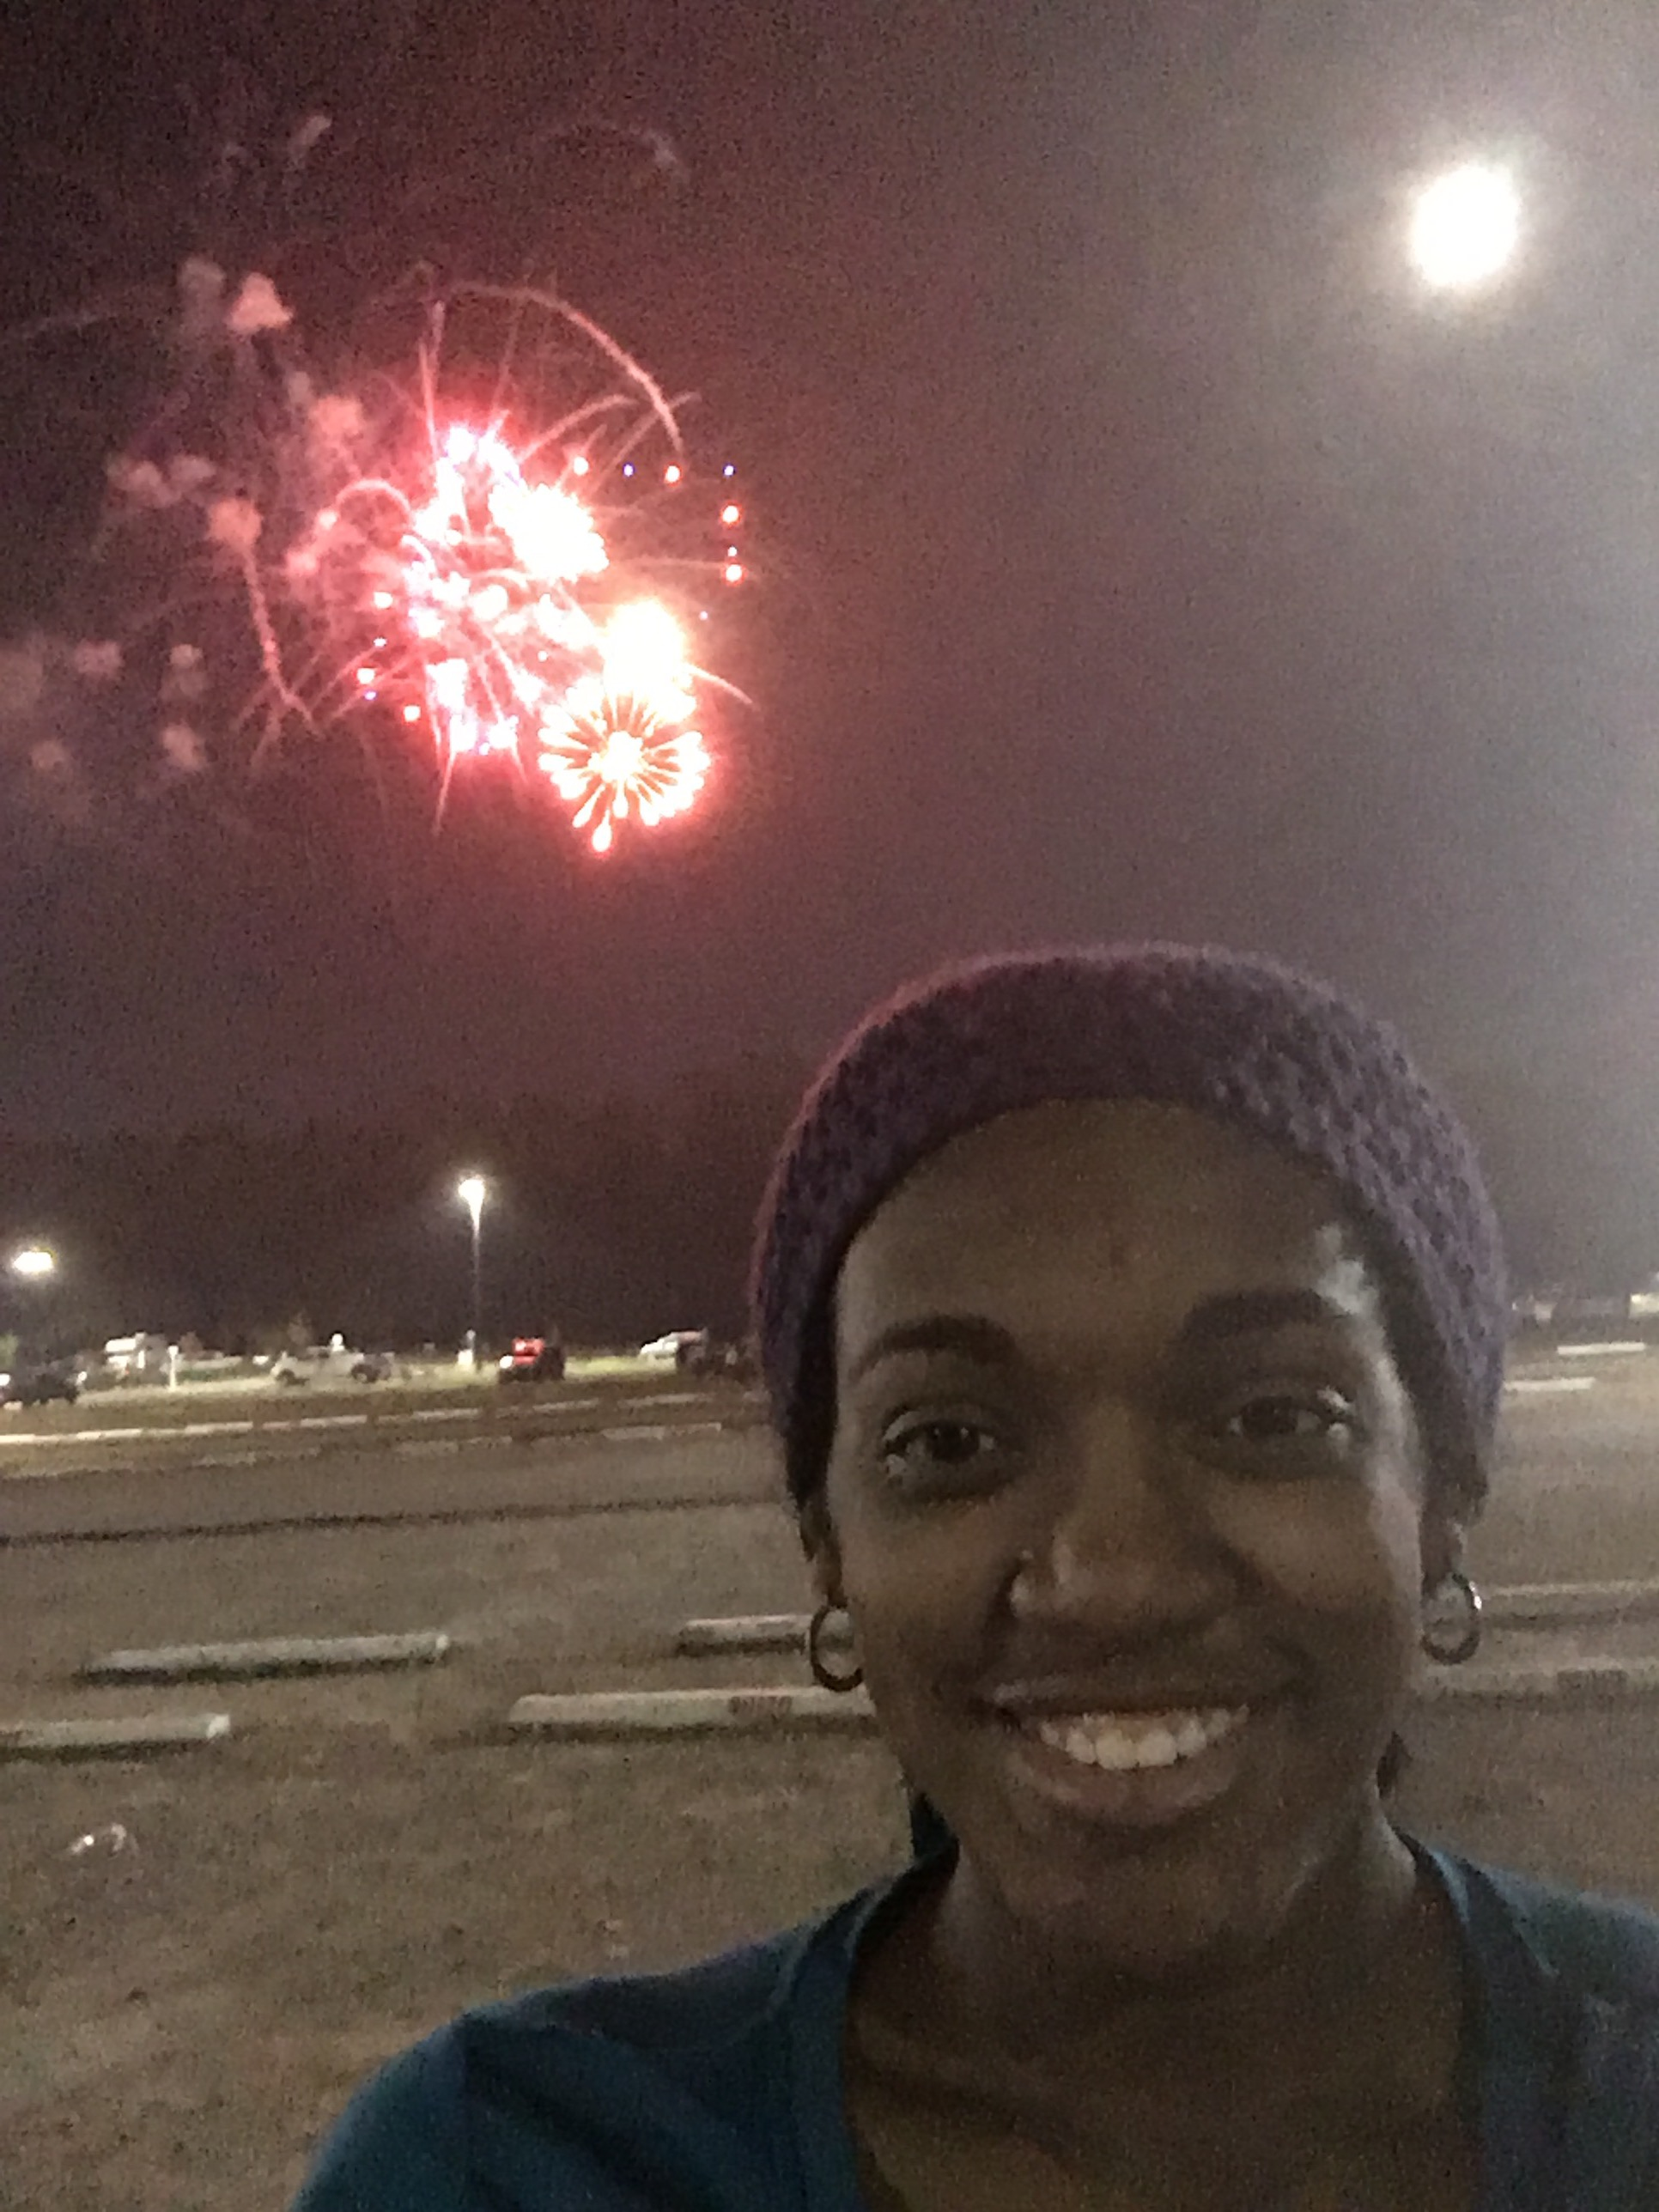 slouch hat, fireworks